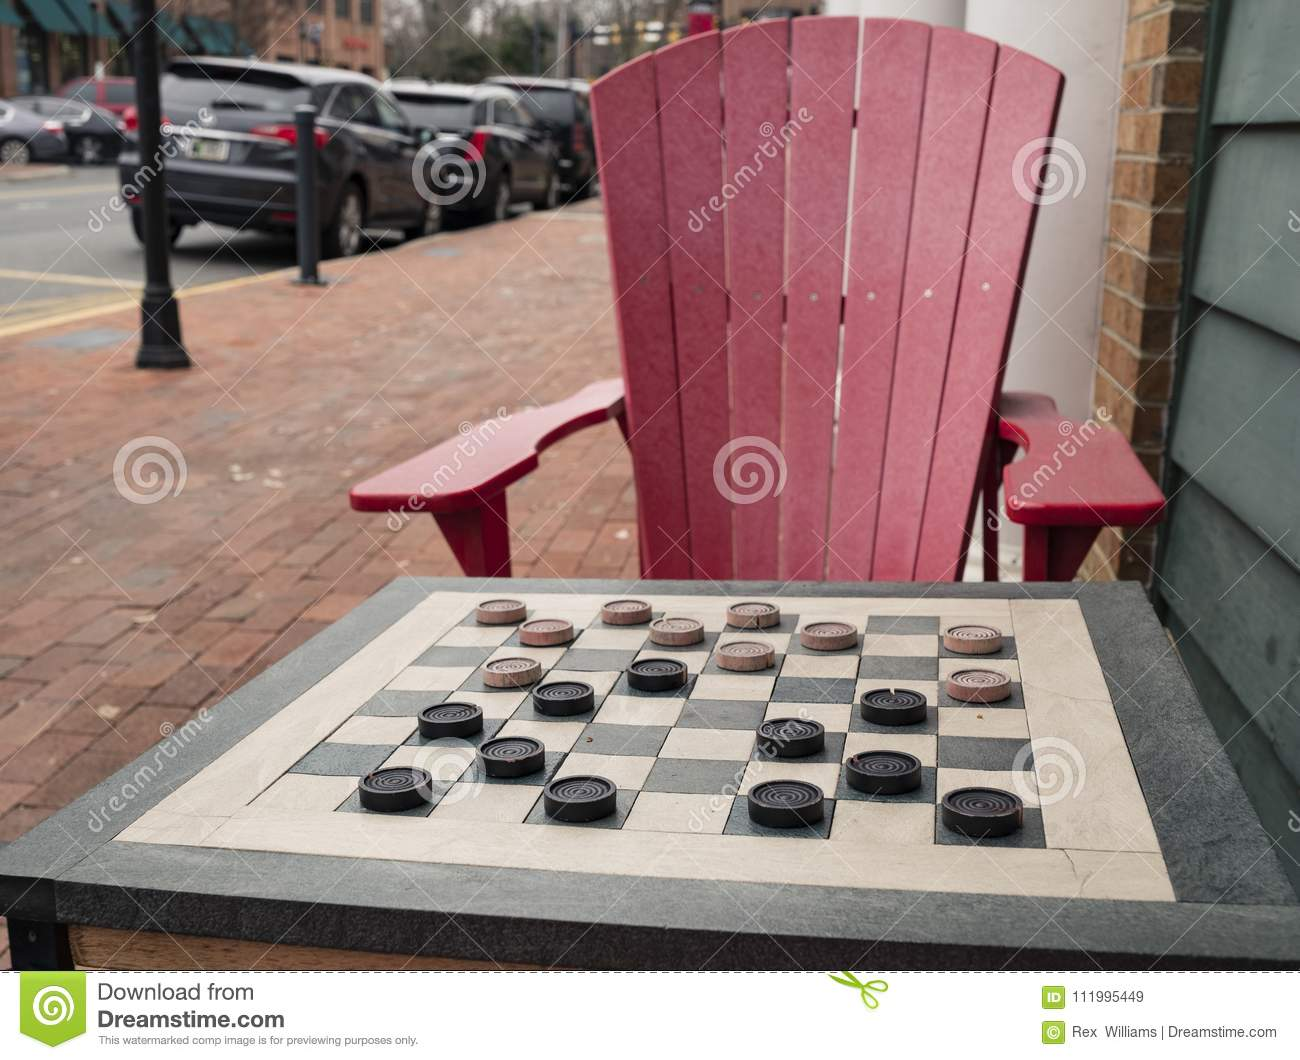 checkers game in public on sidewalk